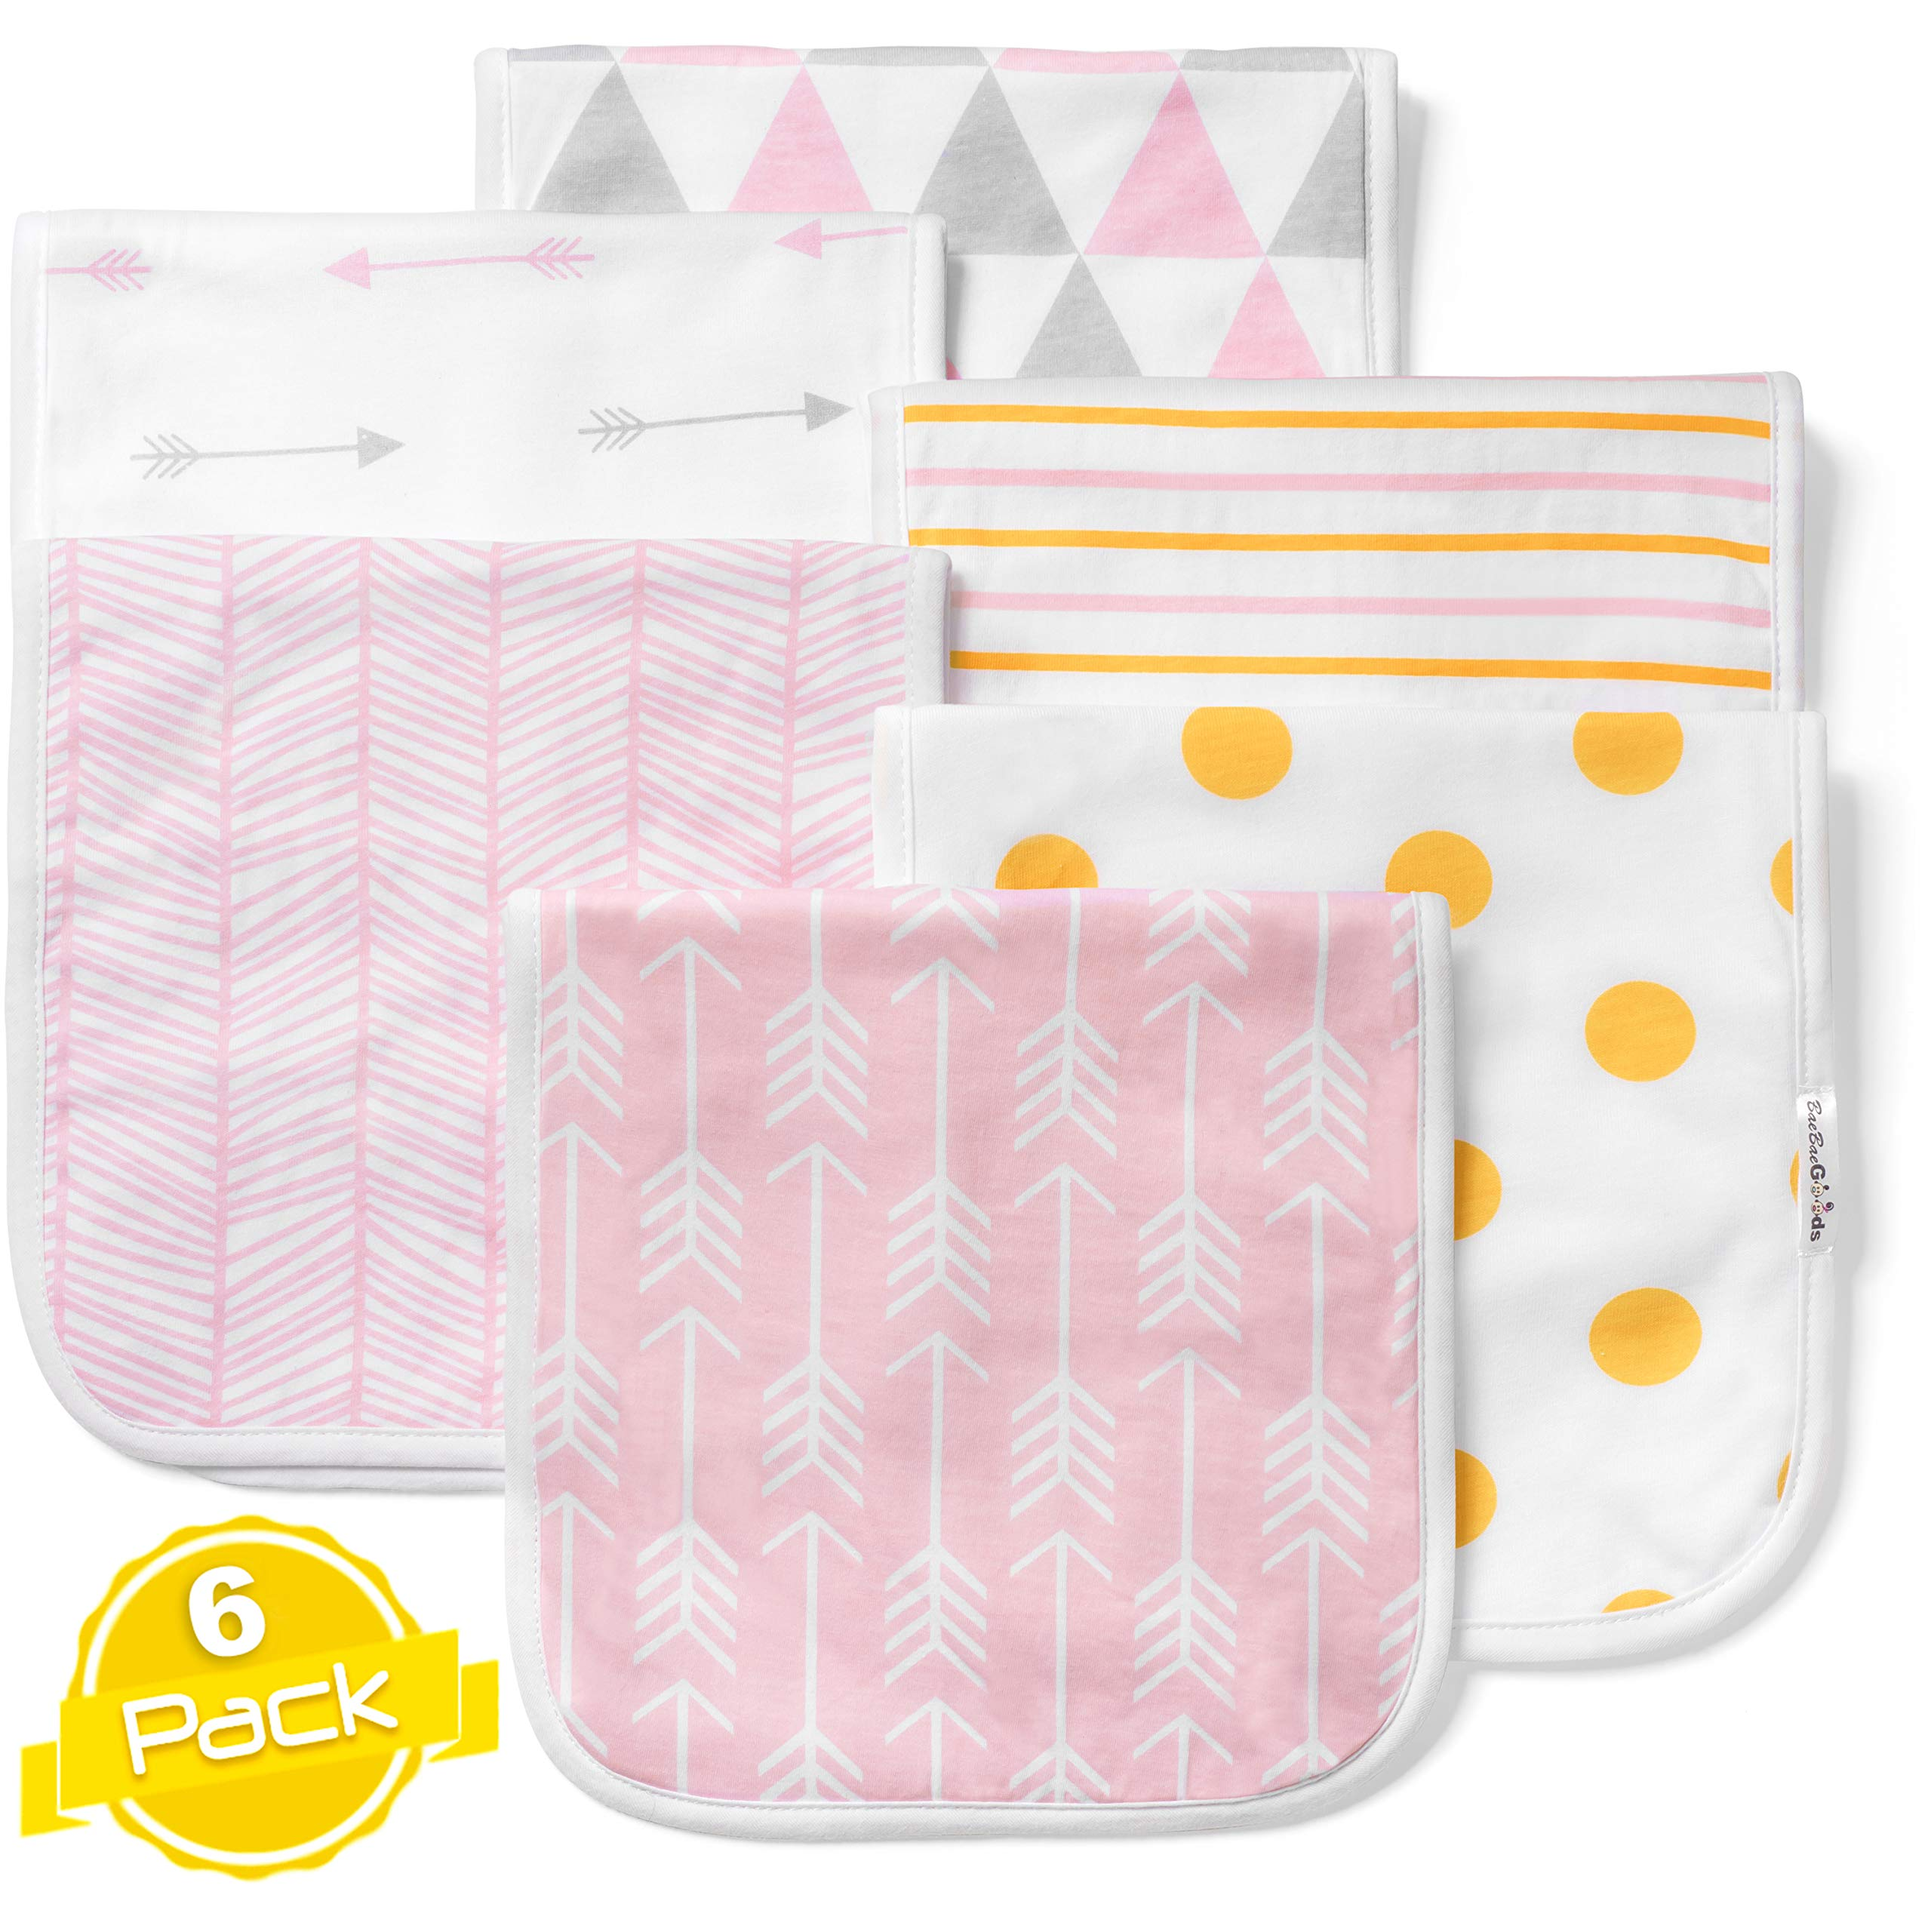 Baby Burp Cloths Set (6 Pack), Super Soft Cotton, Large 21''x10'', Thick, Soft and Absorbent Towels, Burping Rags for Newborns, Baby Shower Gift for Boys and Girls by BaeBae Goods ...